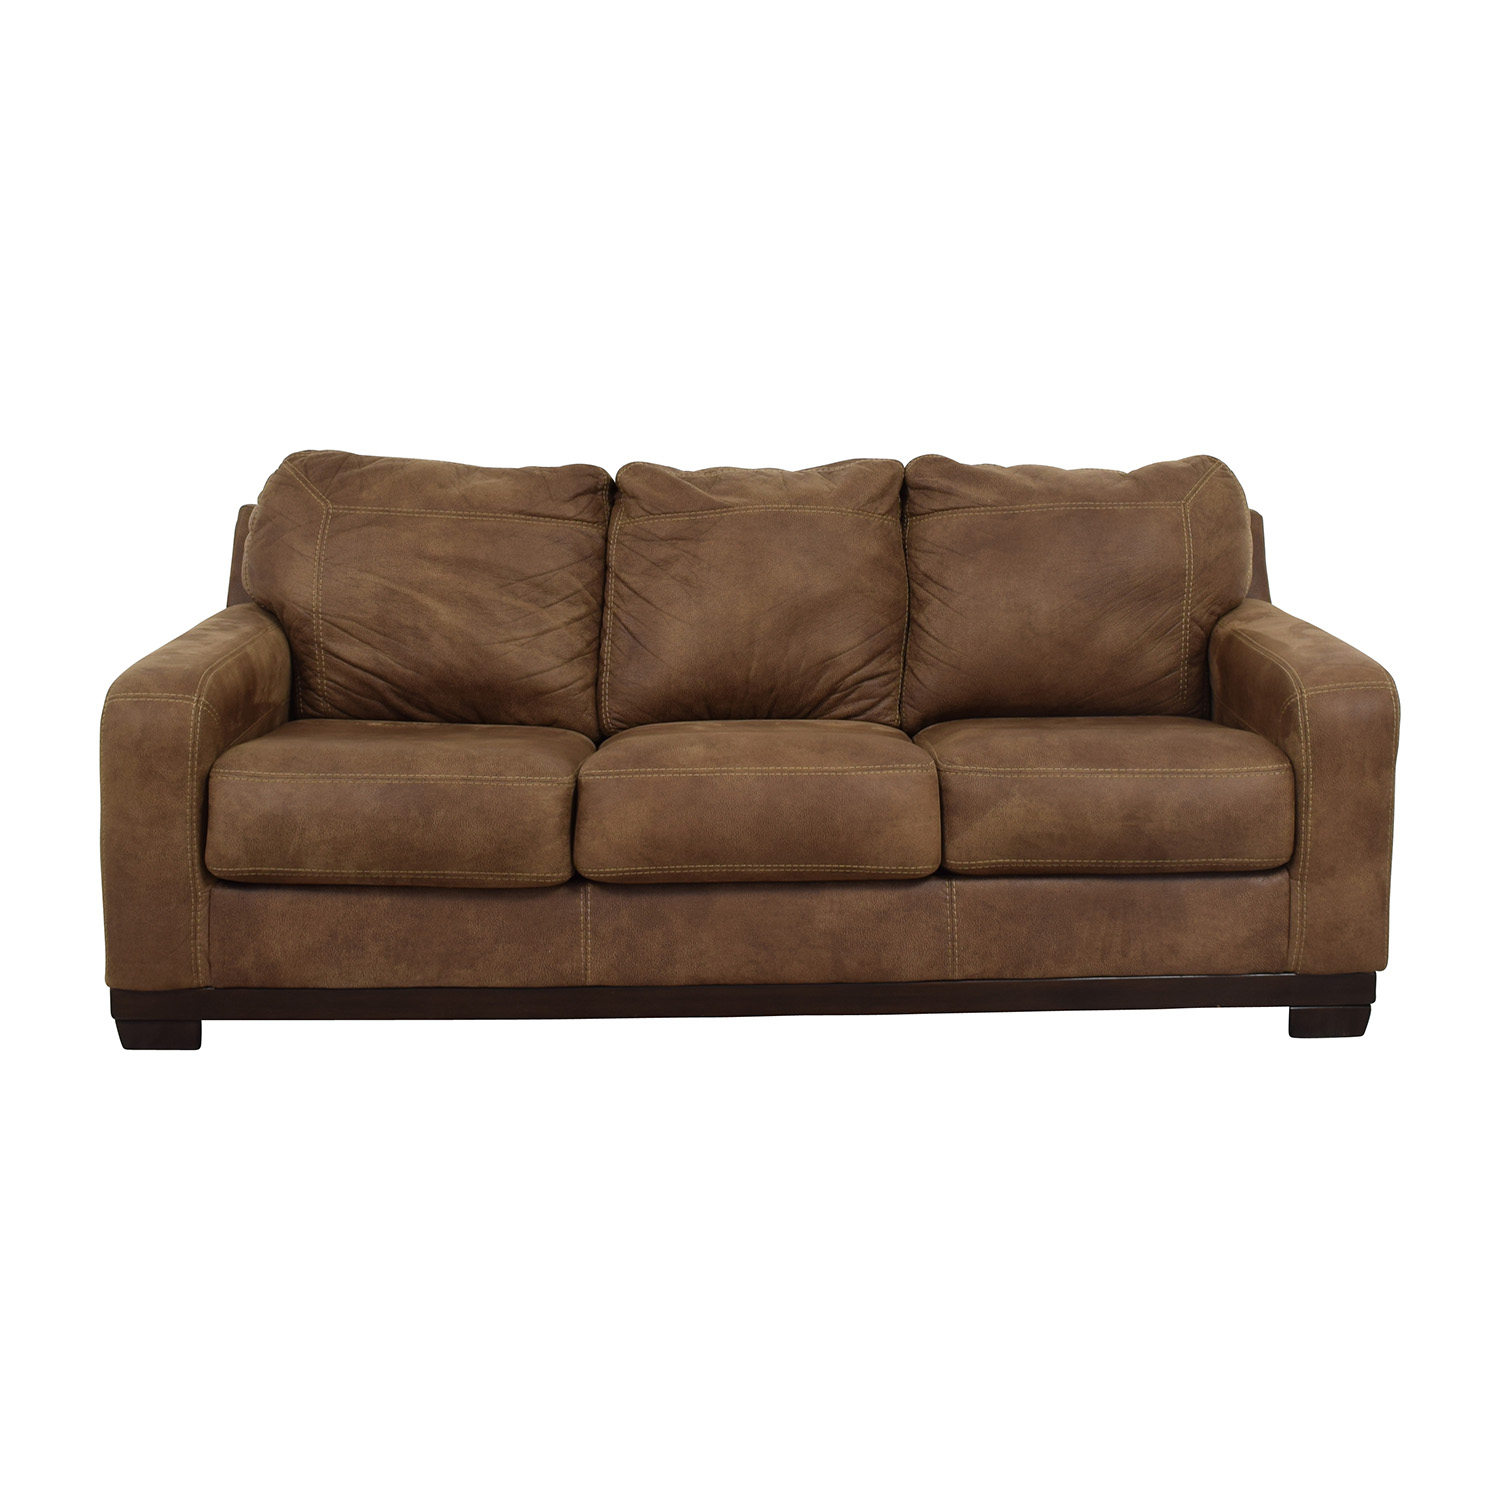 ashley furniture sofas elliot sofa bed target 79 off kylun brown three